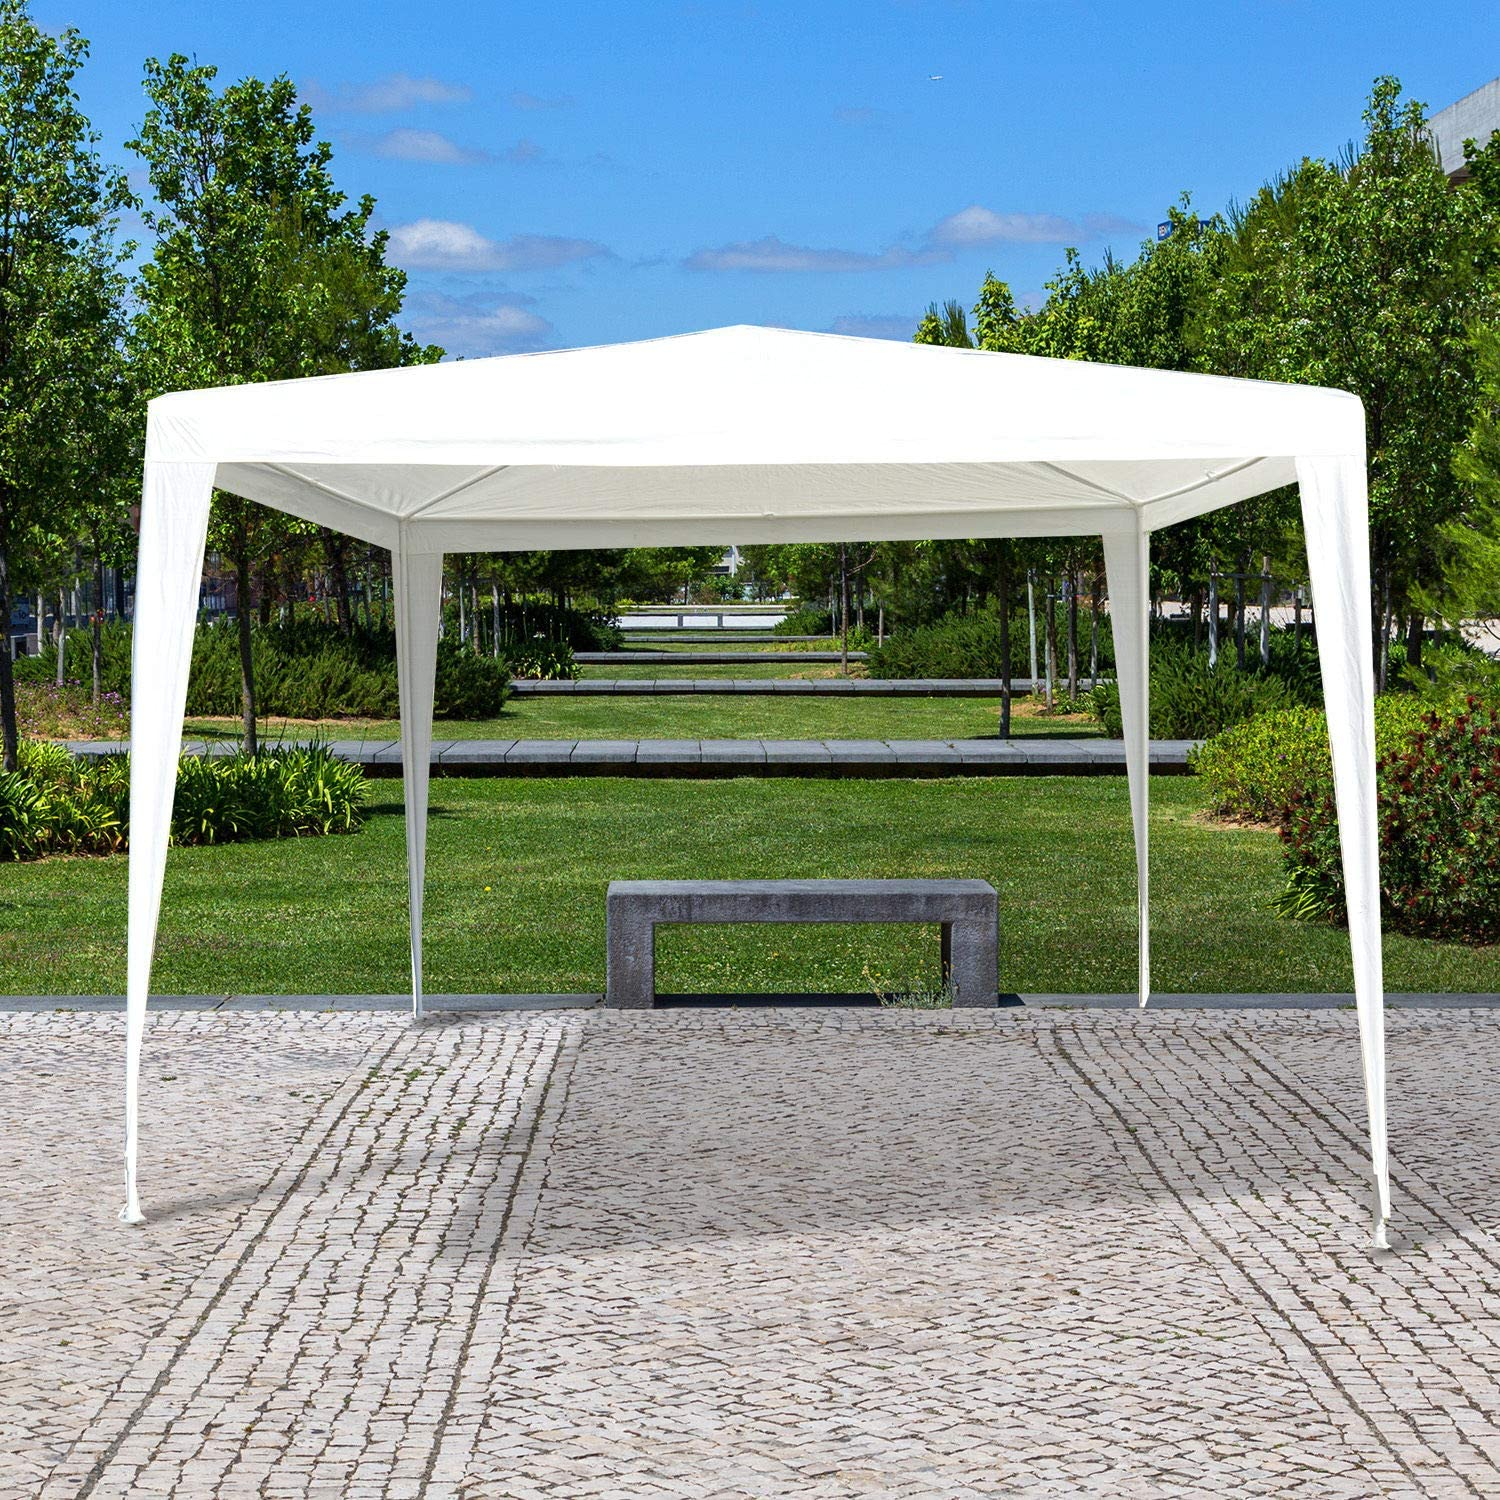 Outsunny Carpa Impermeable de Jardín Acero Oxford Blanco 3x3m ...